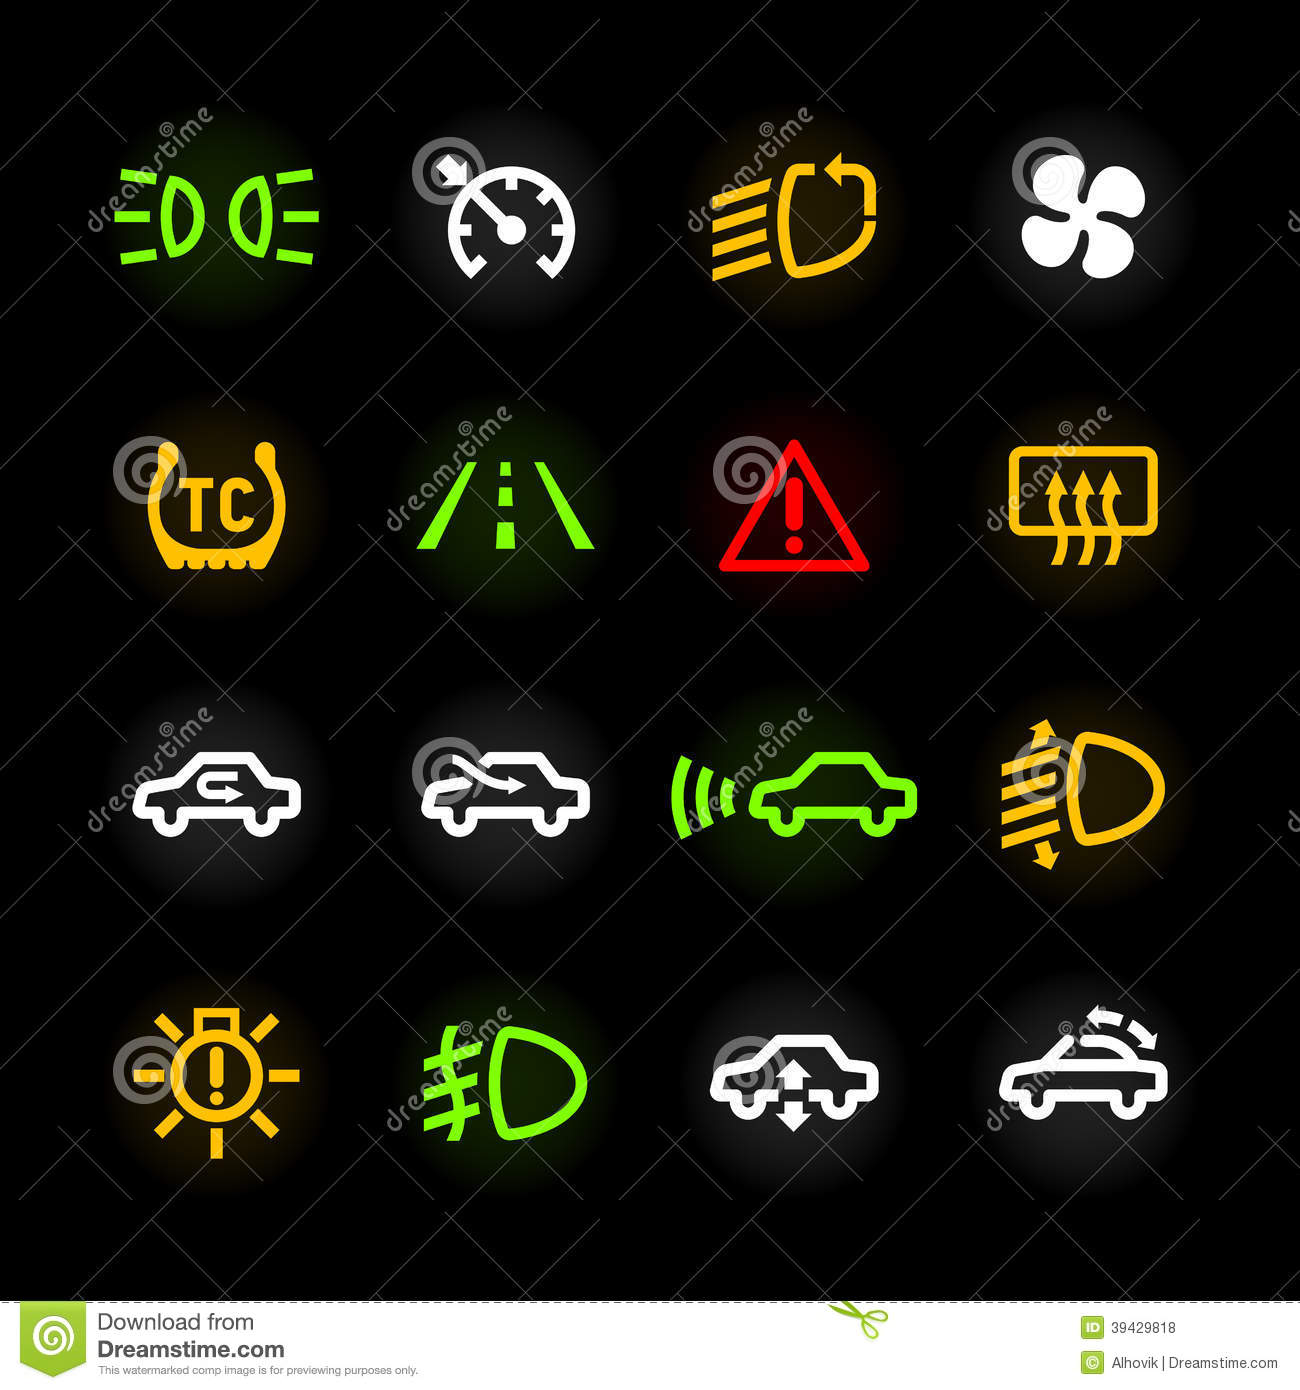 Royalty Free Stock Photos Car Dashboard Icons Set Image39429818 on car temperature switch